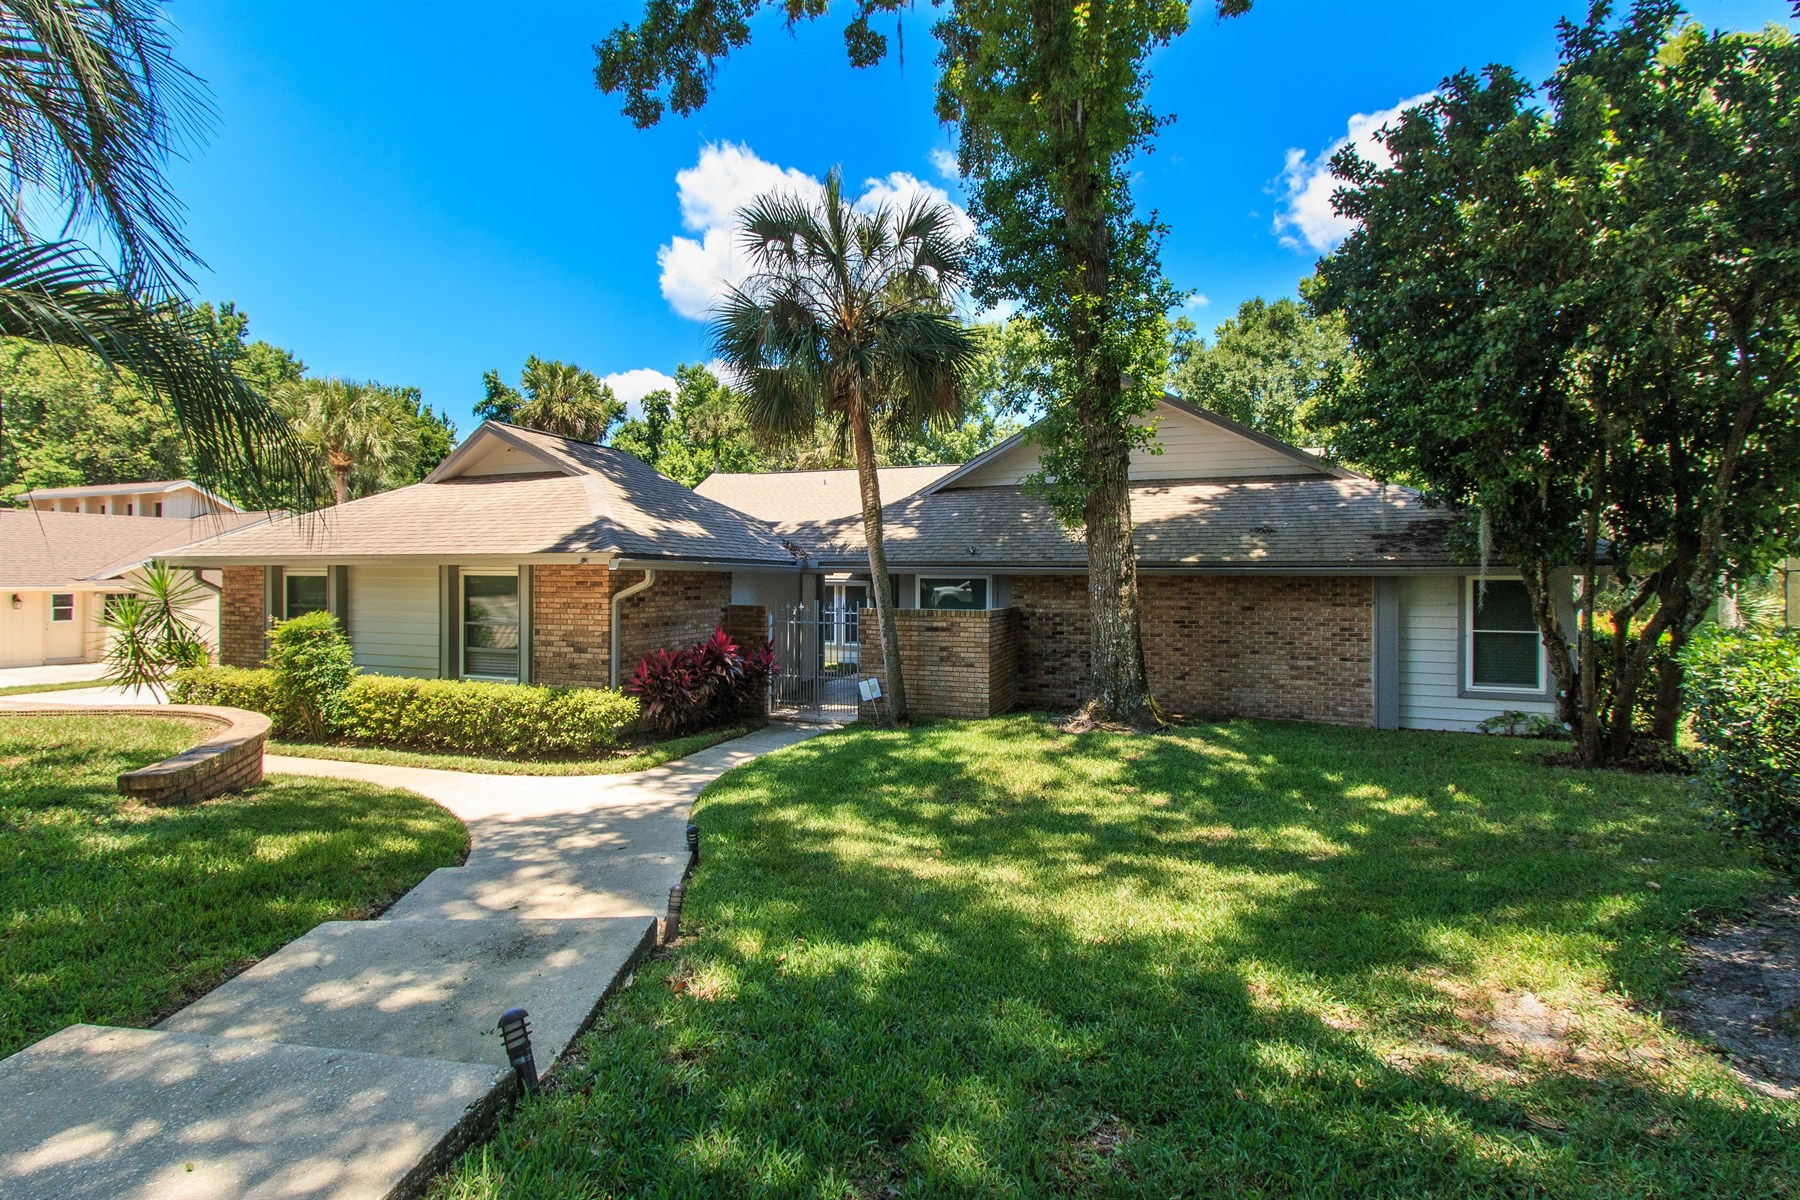 Single Family Home for Sale at Longwood, Florida 412 Timber Ridge Longwood, Florida 32779 United States